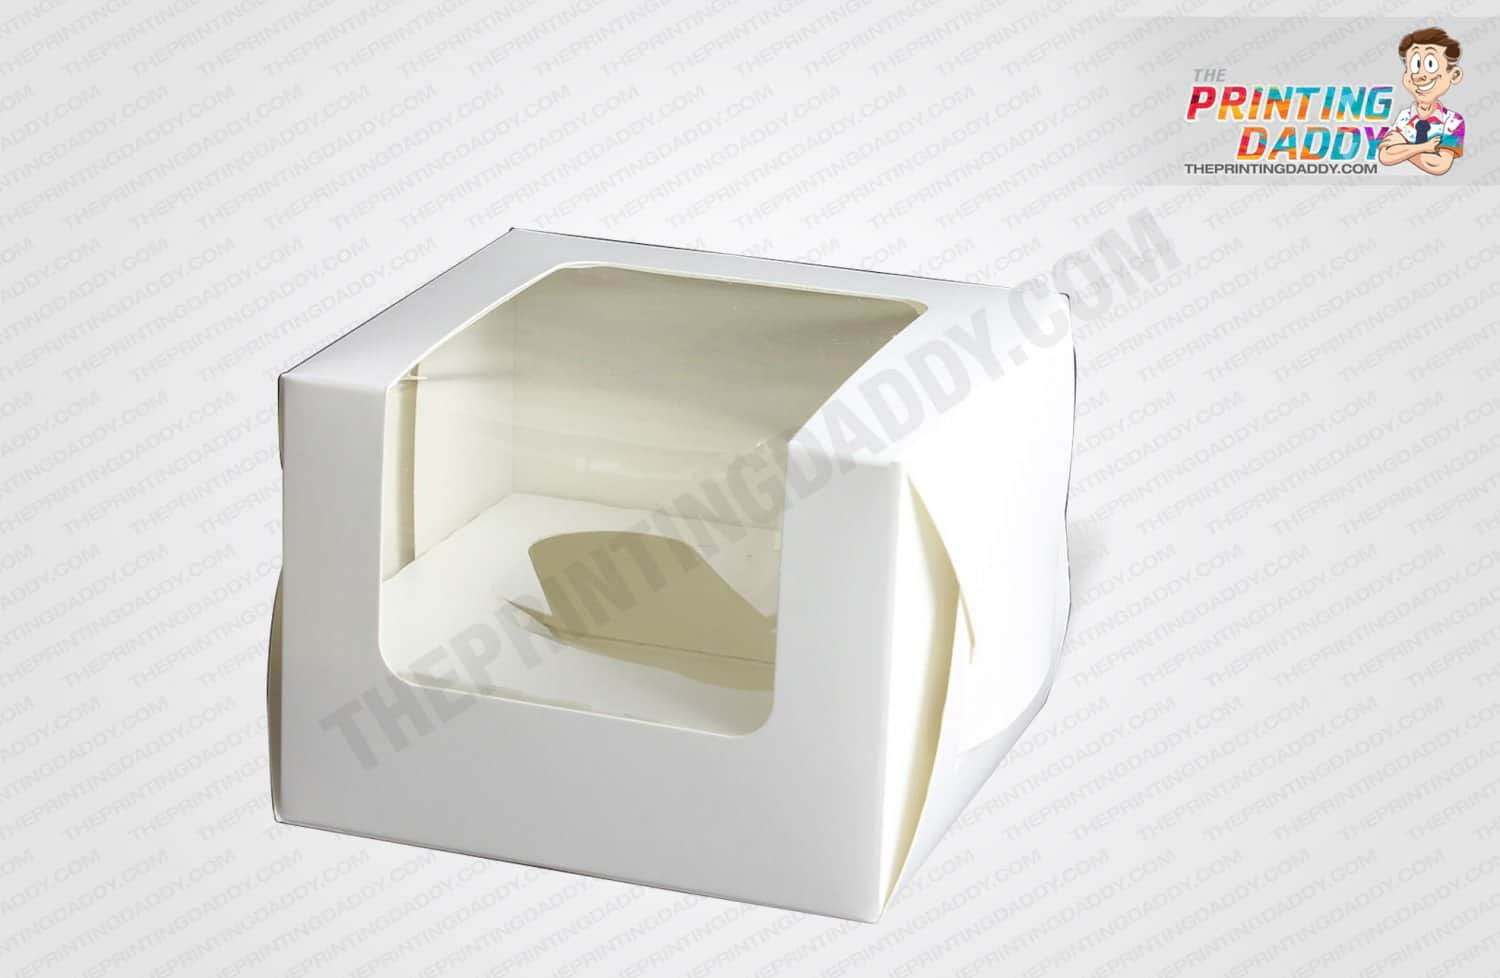 Folding Cake Pastry Boxes The Printing Daddy